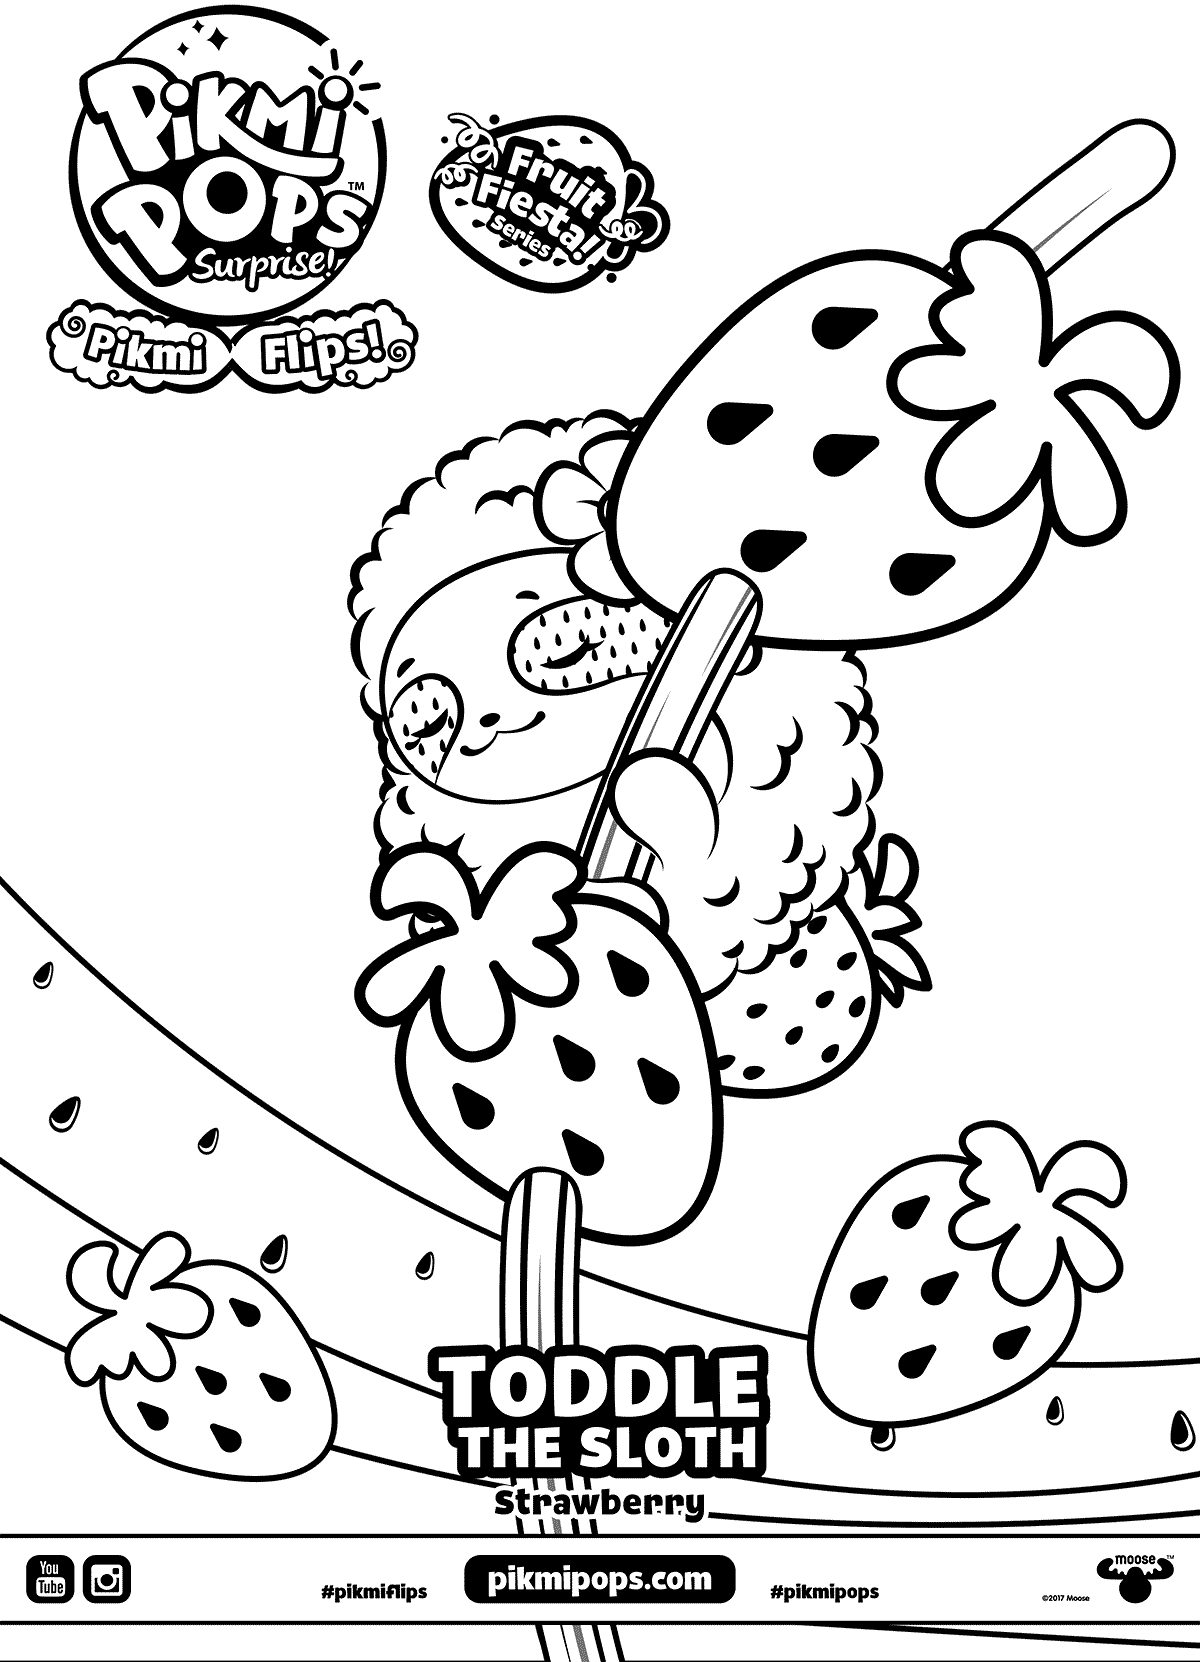 Toddle Pikmi Pops Coloring Pages